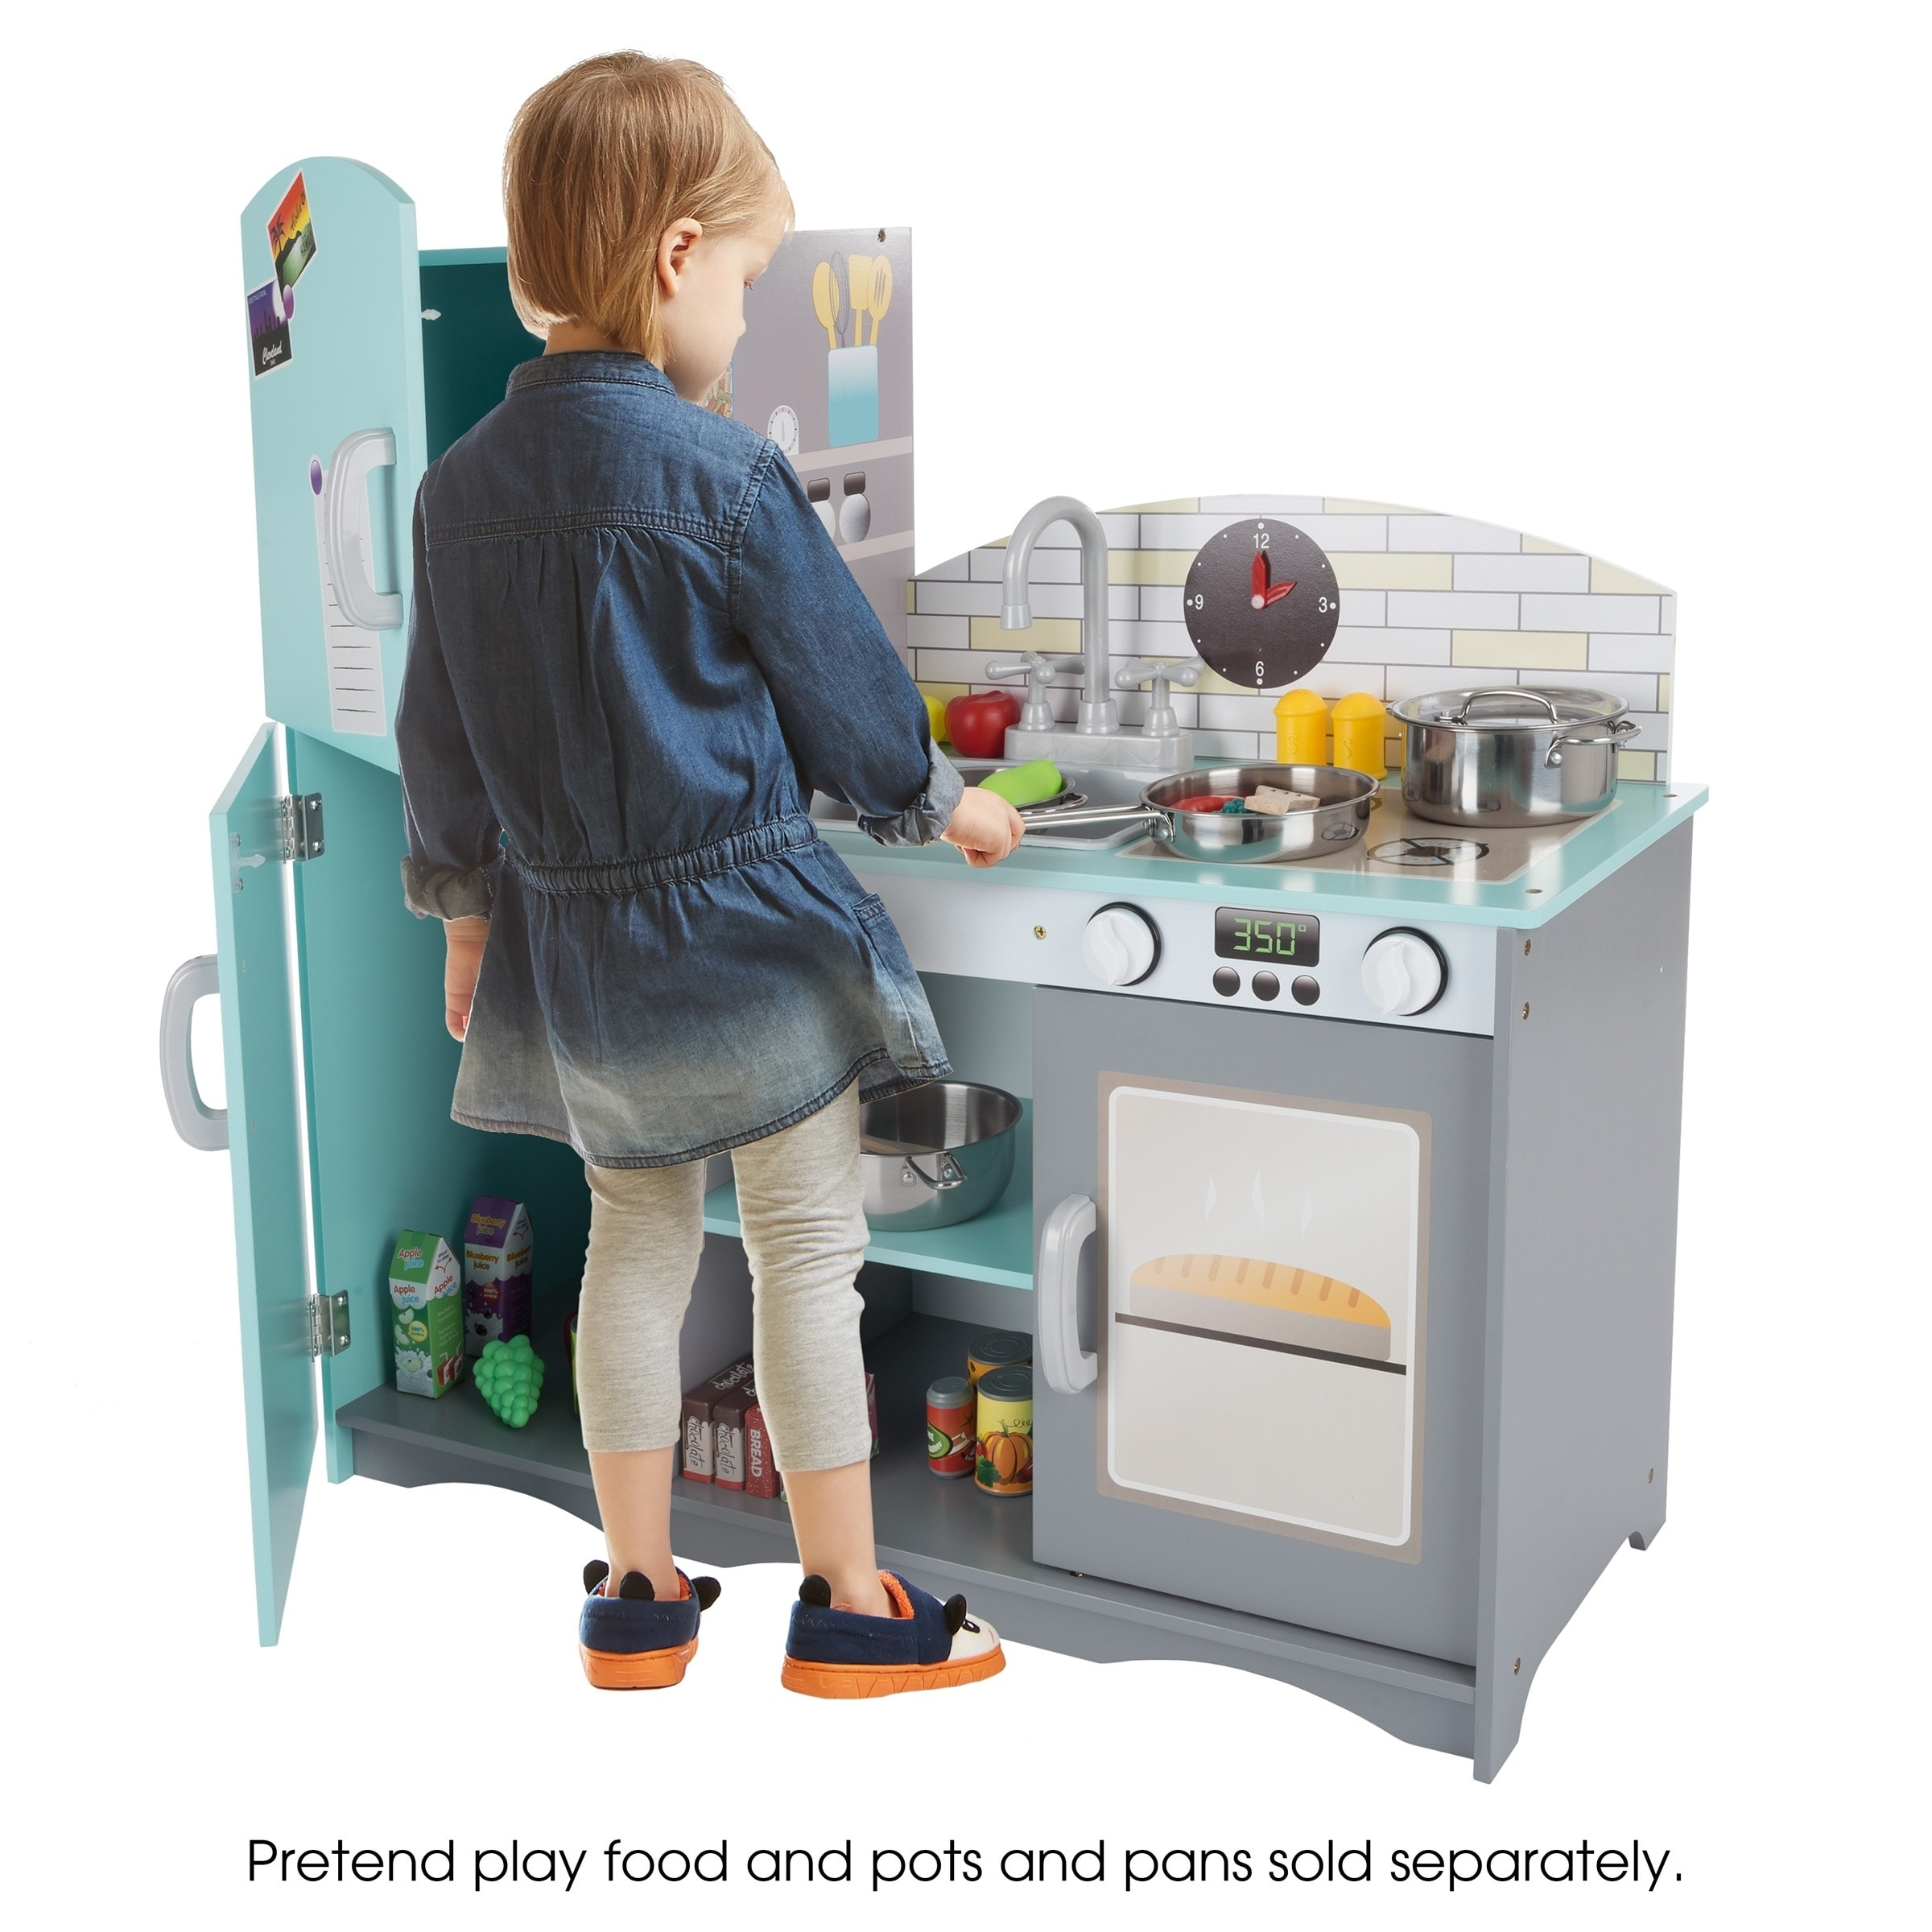 Shop kids toy kitchen set fun pretend play home kitchen playset with oven sink stove refrigerator freezer by hey play on sale free shipping today